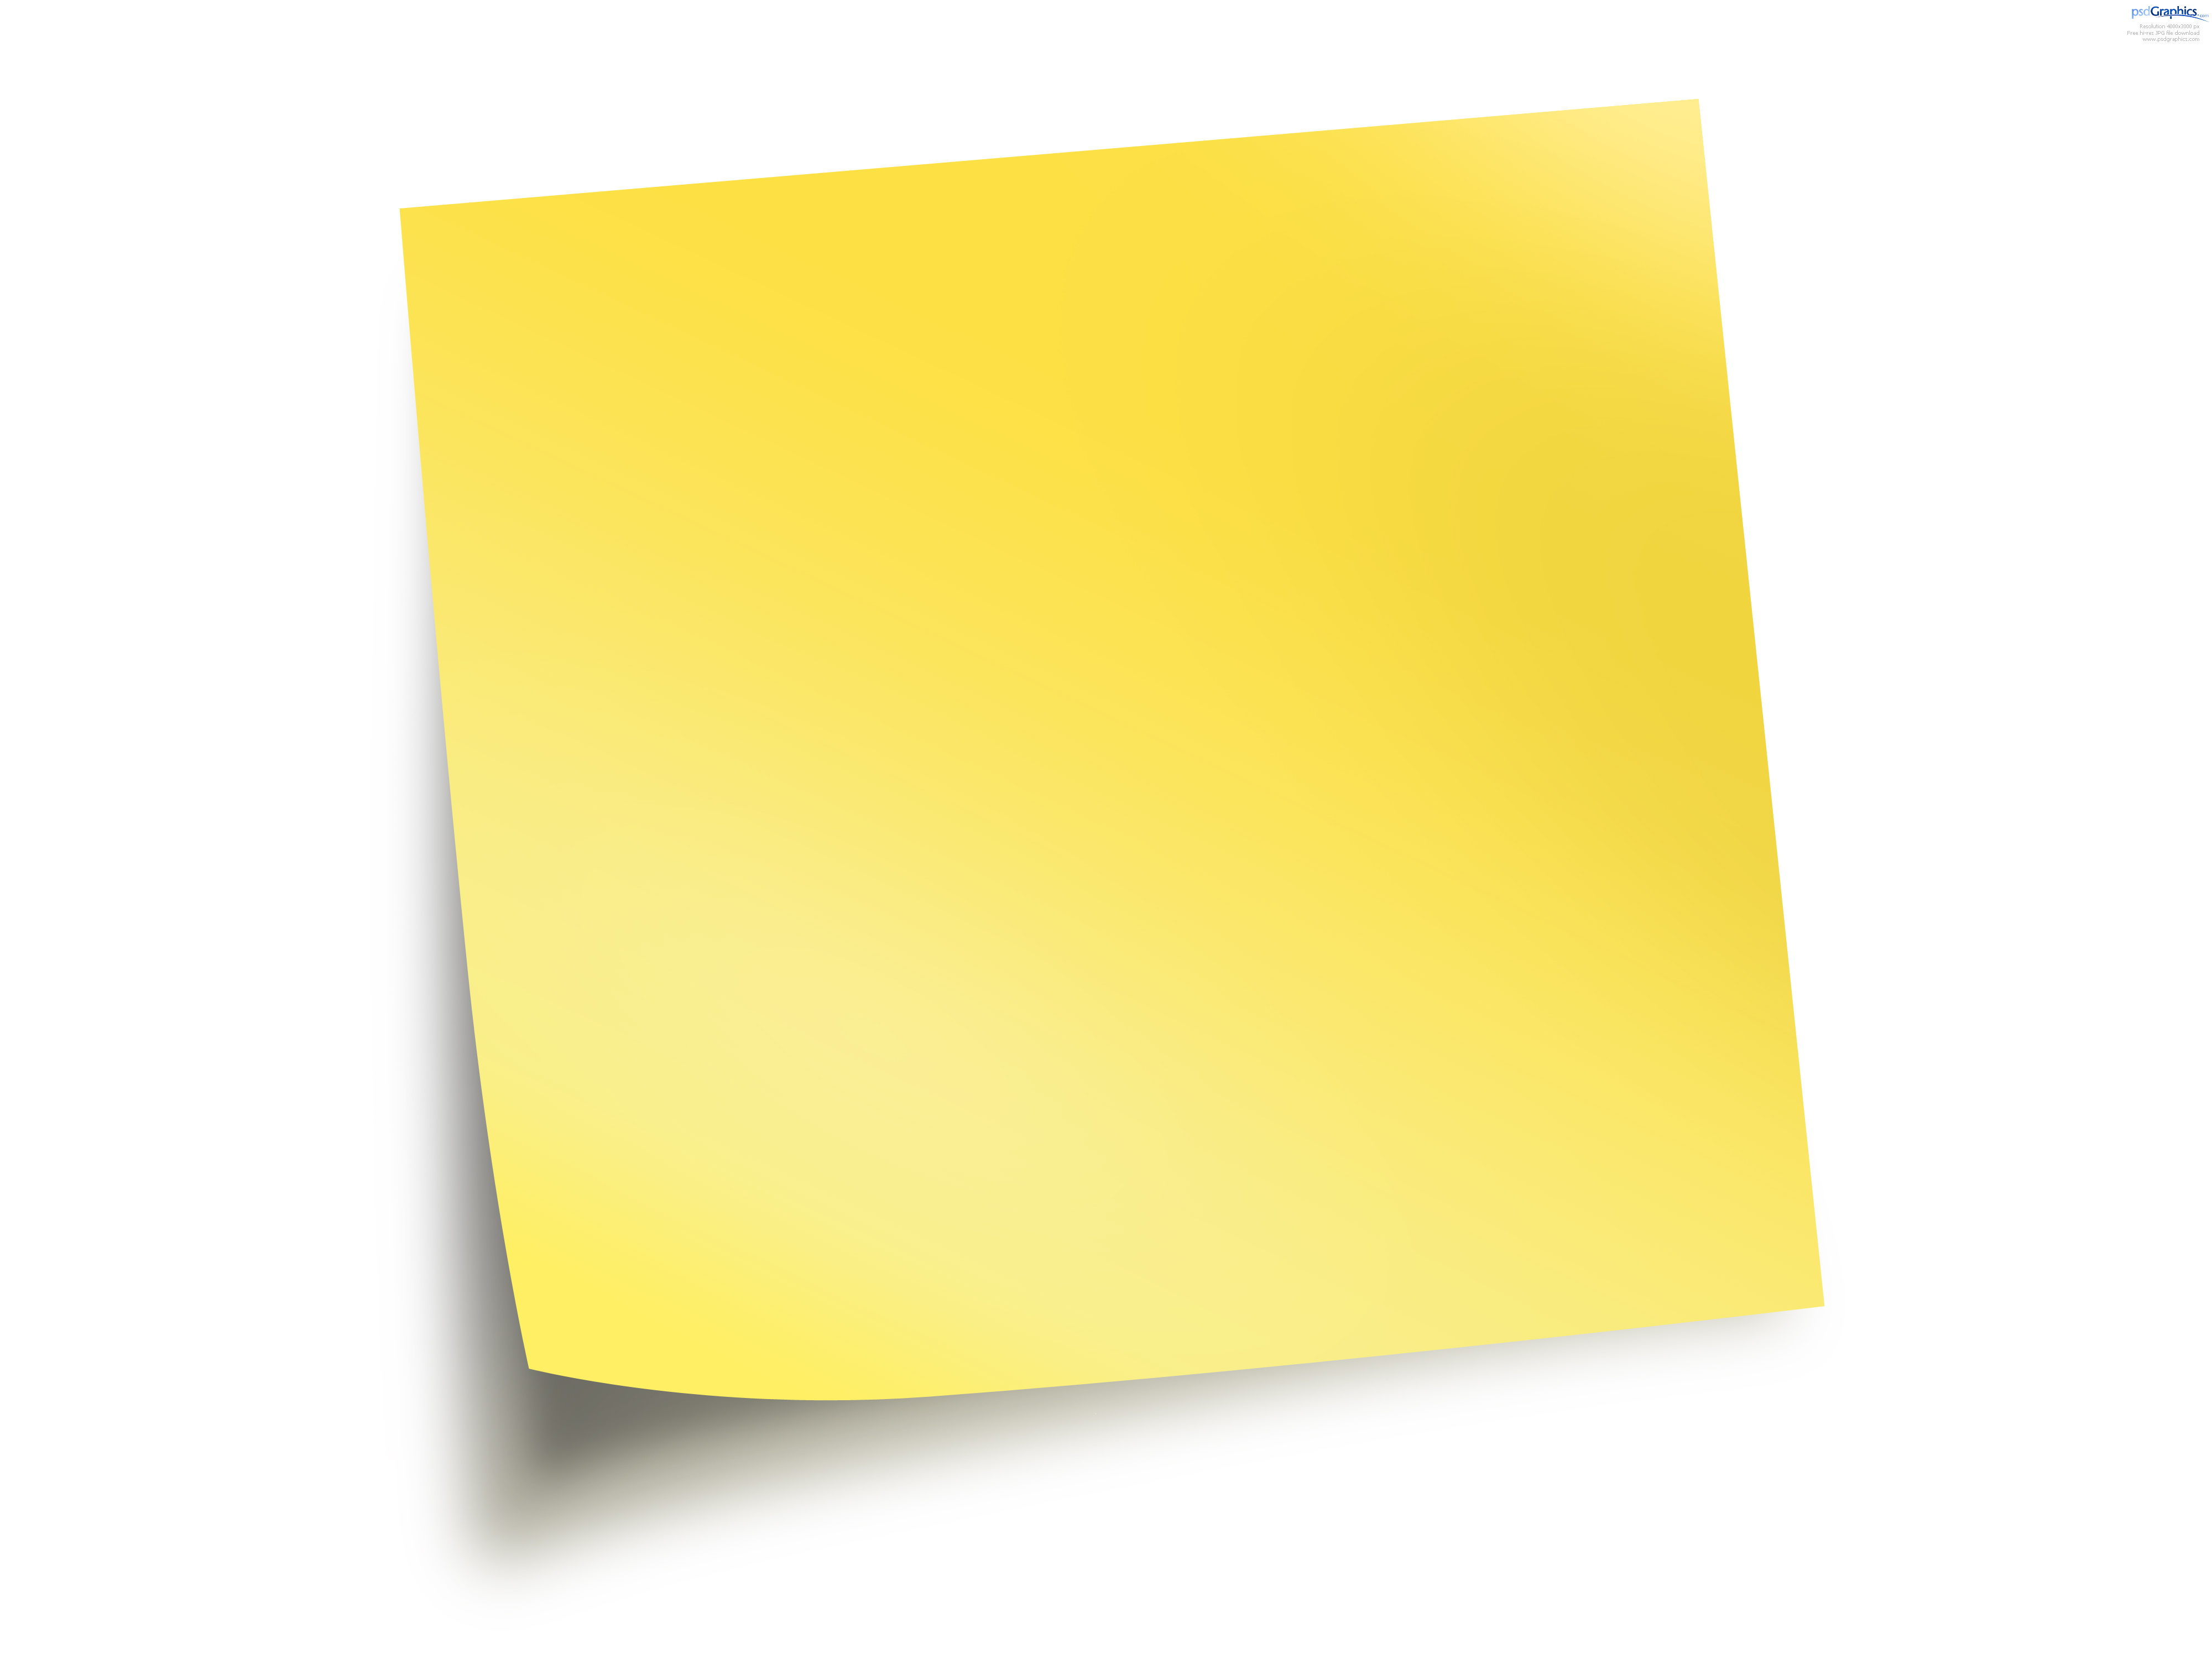 Sticky note clipart jpg transparent stock Free Sticky Notes, Download Free Clip Art, Free Clip Art on ... jpg transparent stock